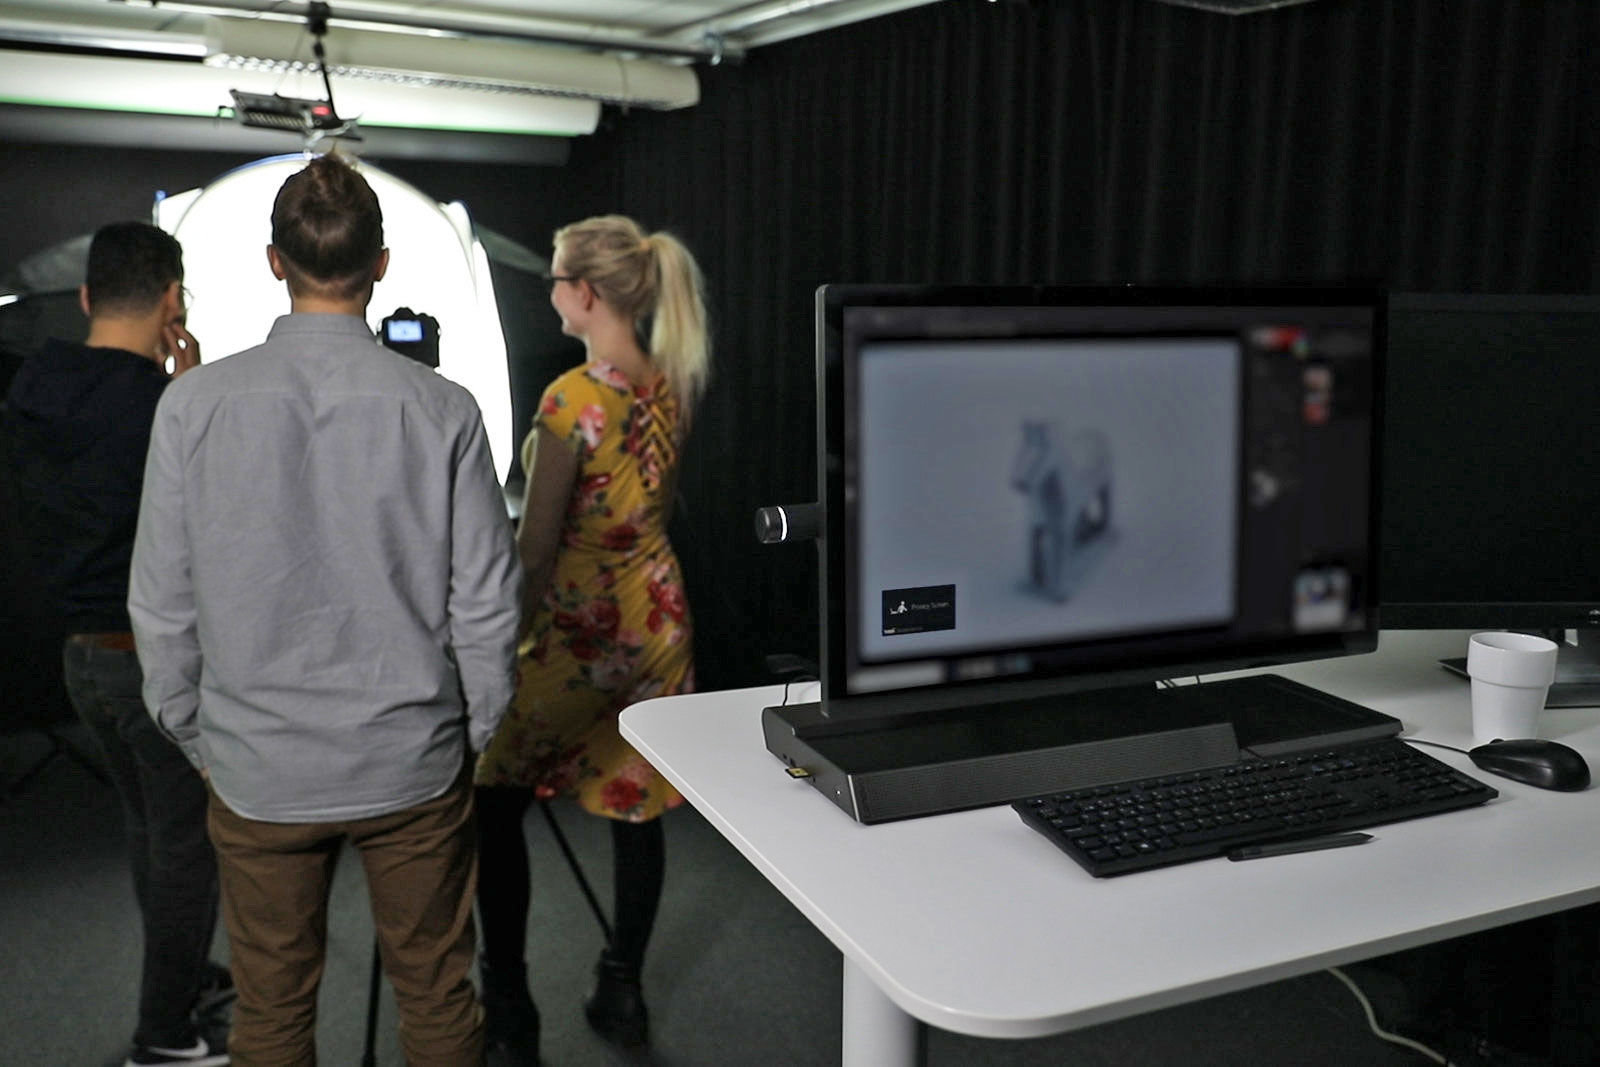 Tobii uses eye tracking to keep people from peeking at your screen